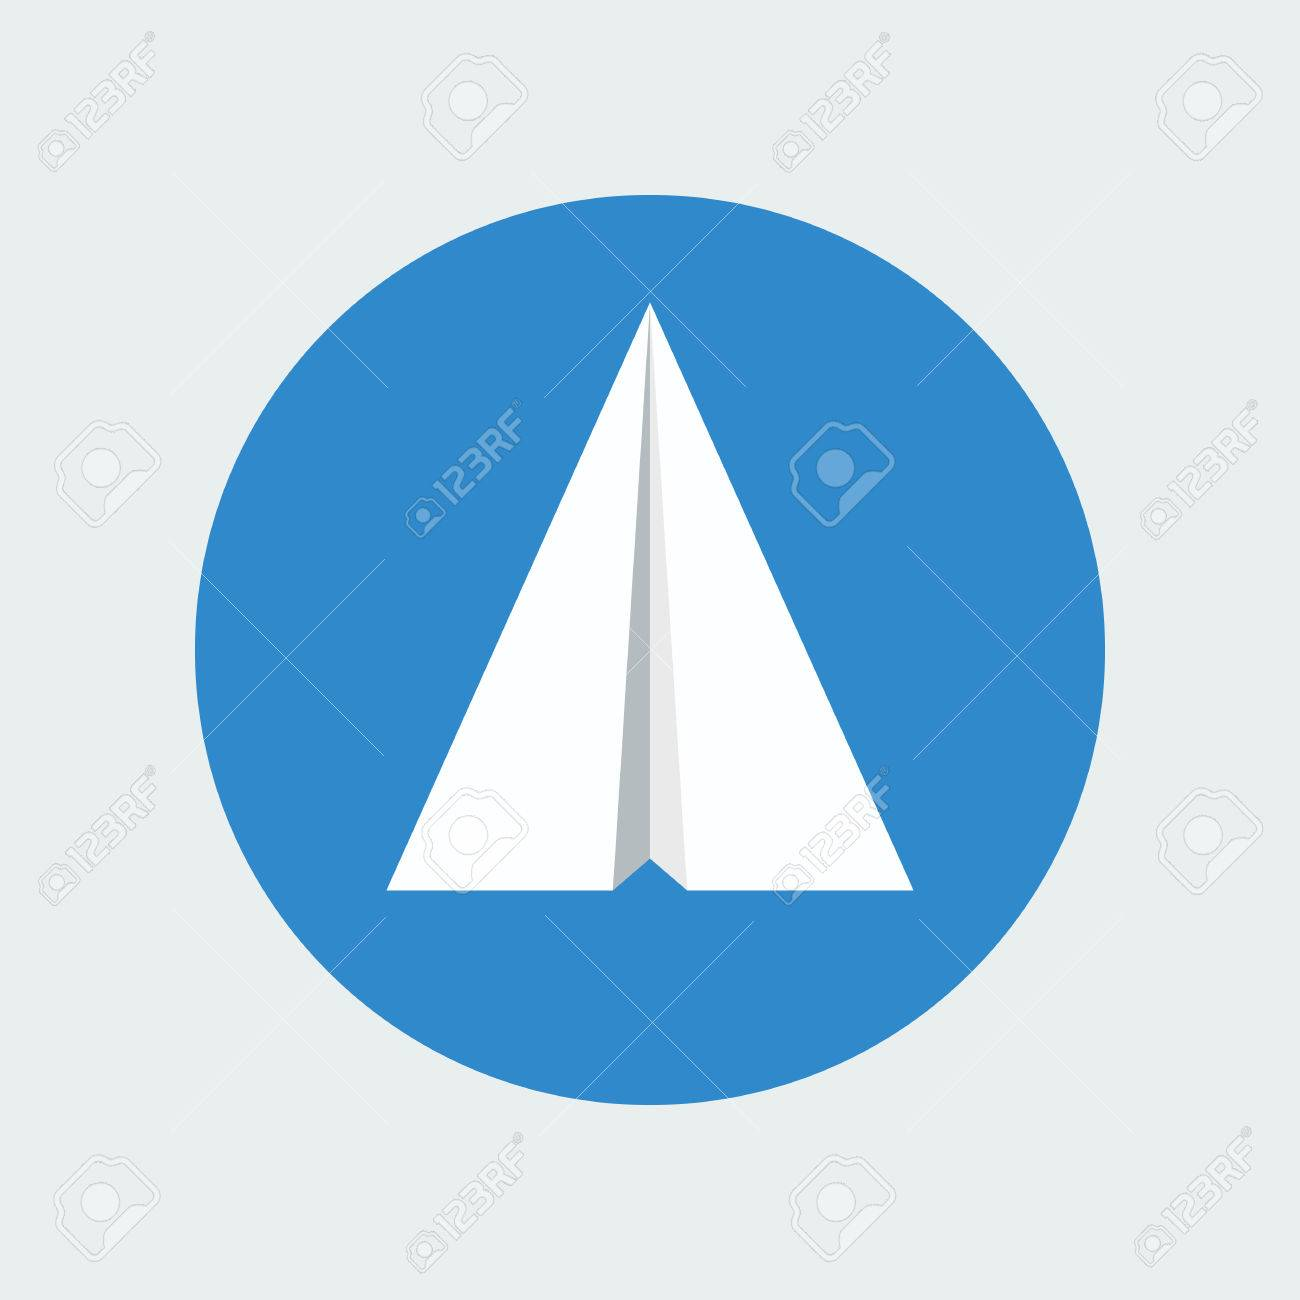 Paper plane icon isolated inside sky blue circle background paper plane icon isolated inside sky blue circle background symbol of a white papercraft origami buycottarizona Image collections